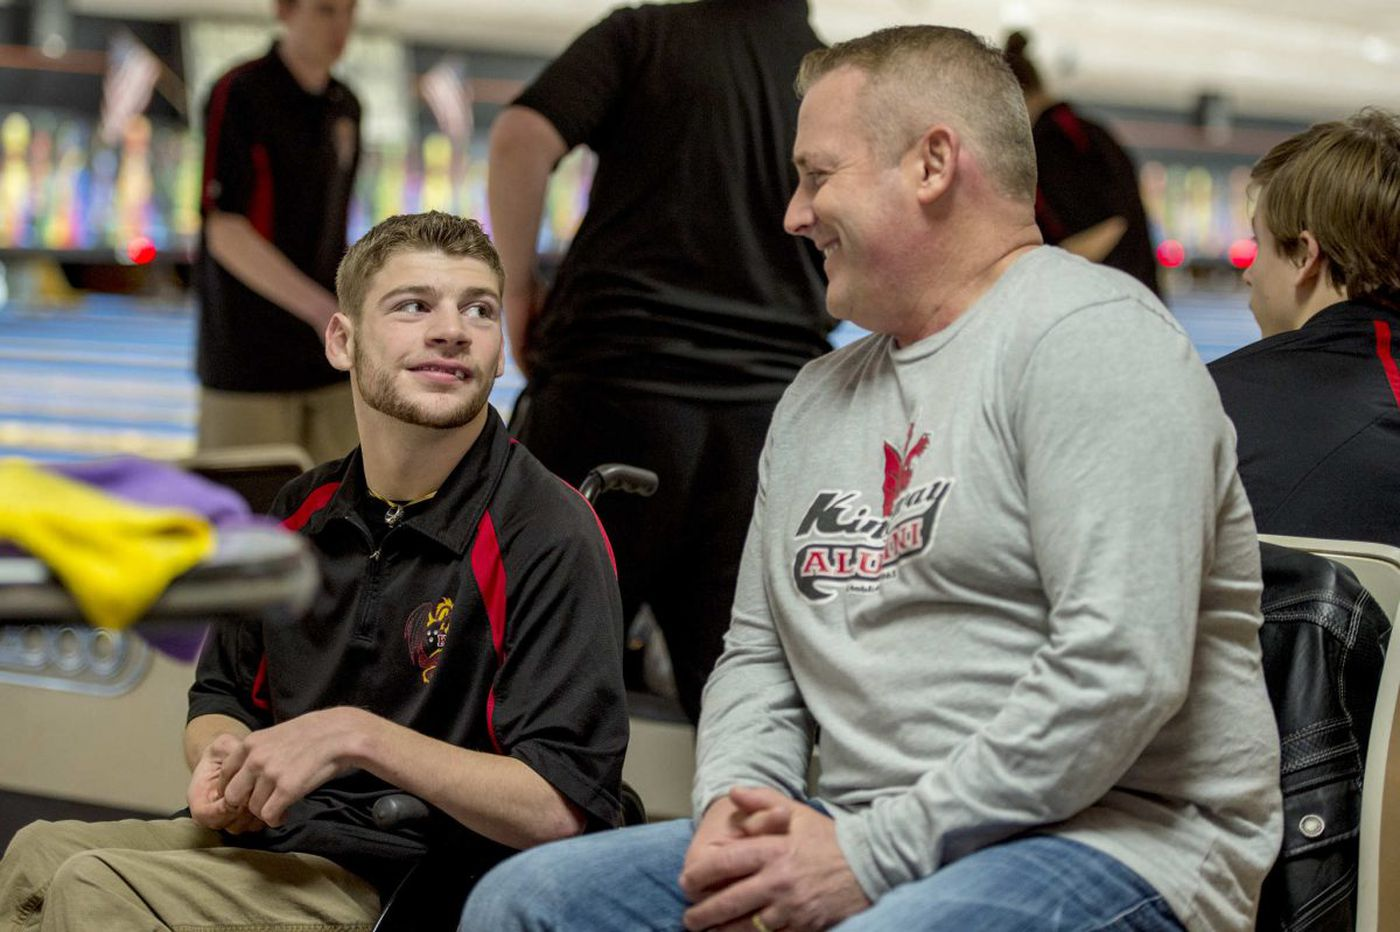 Born with half a heart, Kingsway bowler Josh Everwine inspires his school community